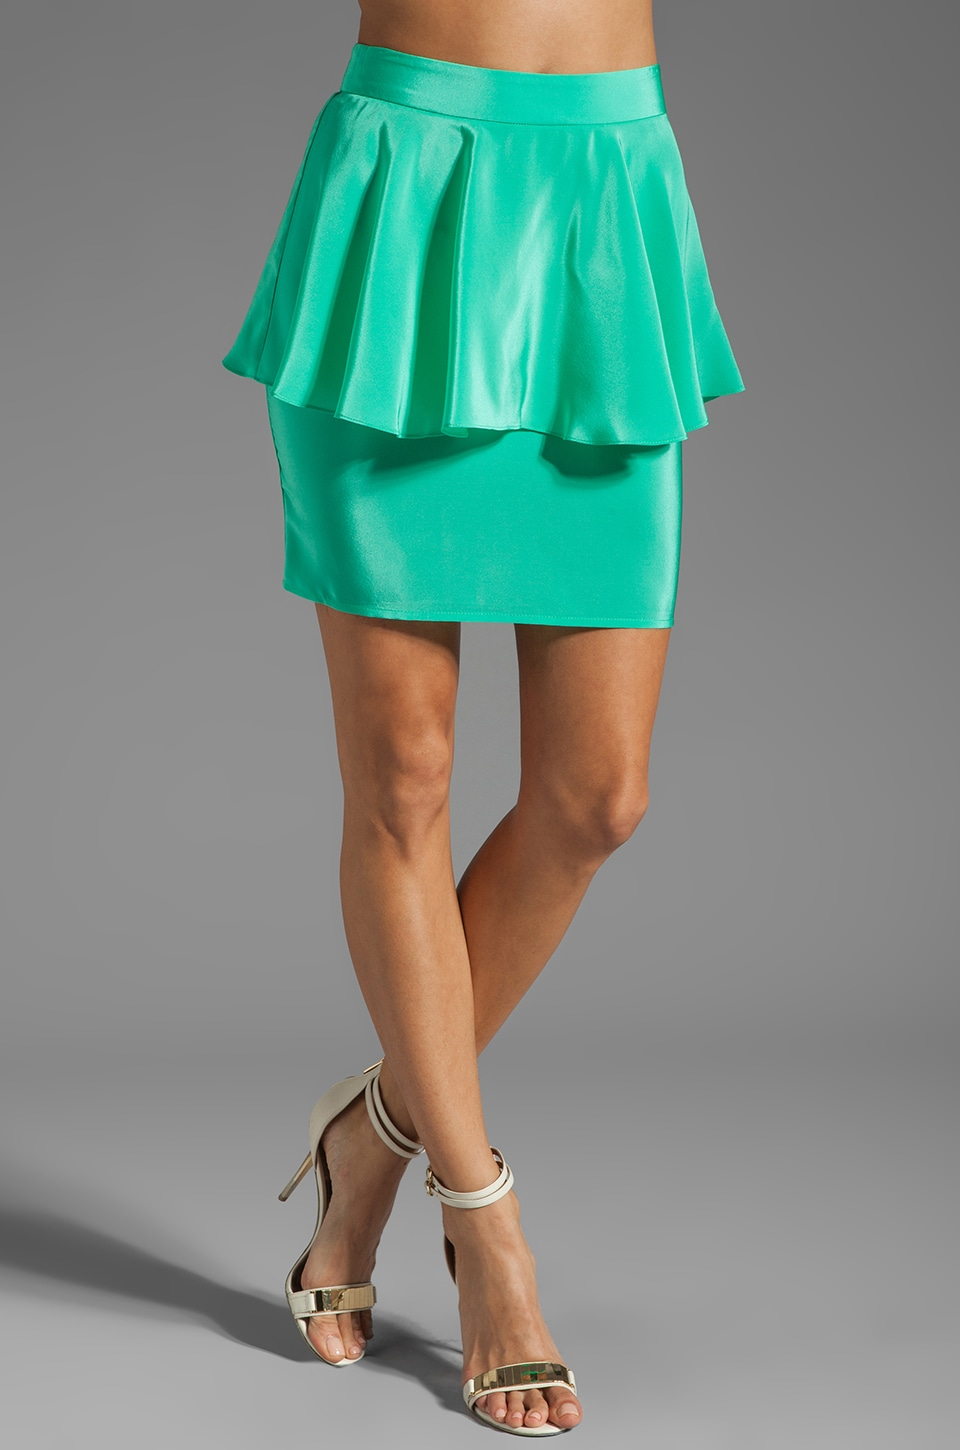 Amanda Uprichard Silk Peplum Skirt in Mint